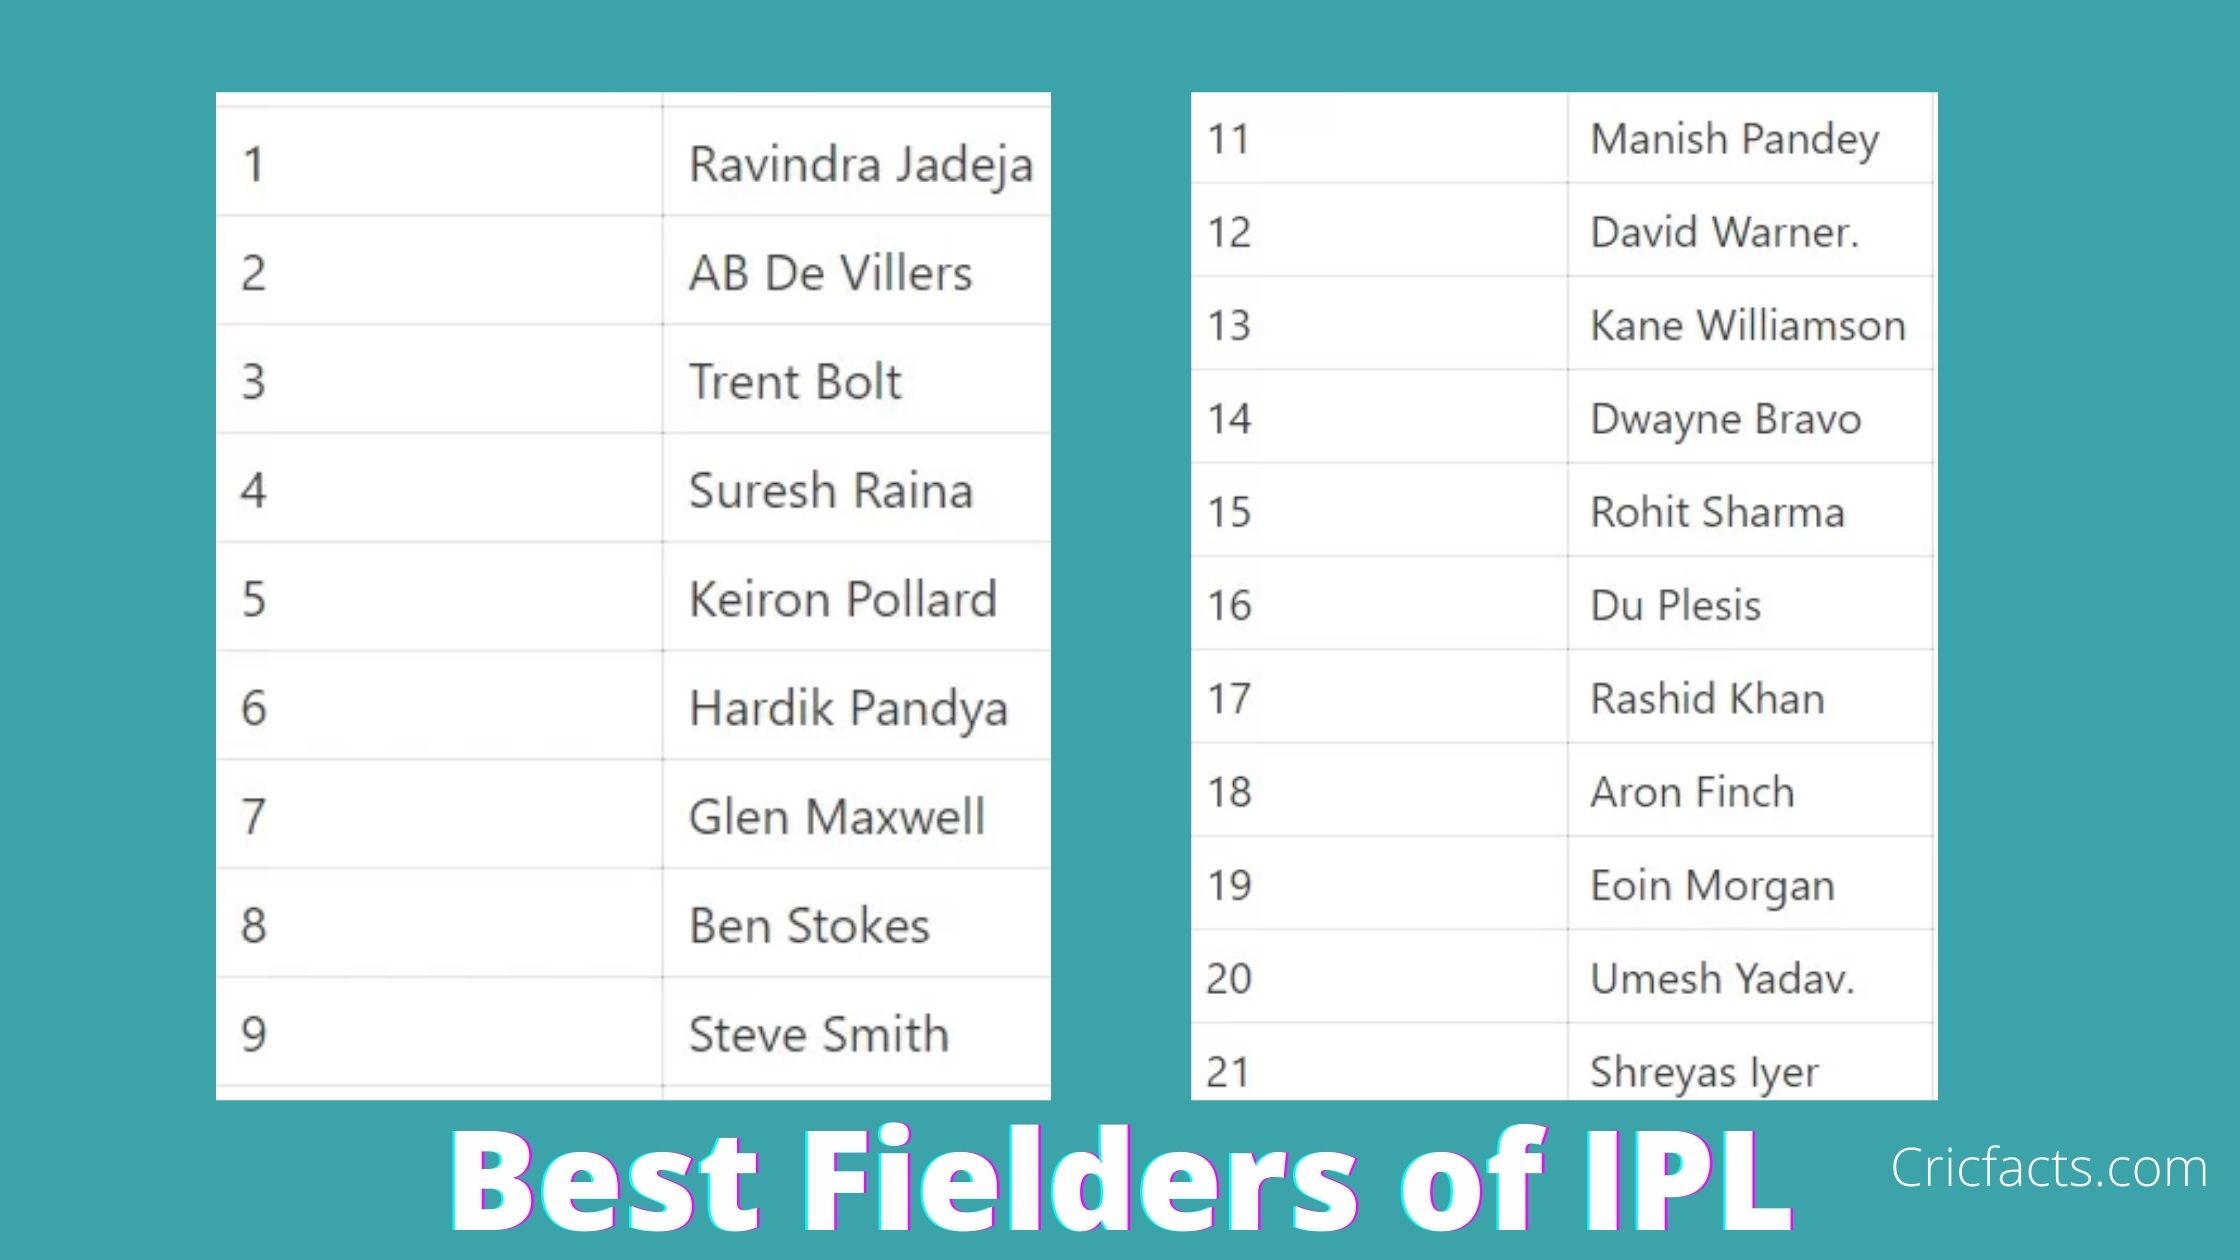 Best fielders of IPL 2020